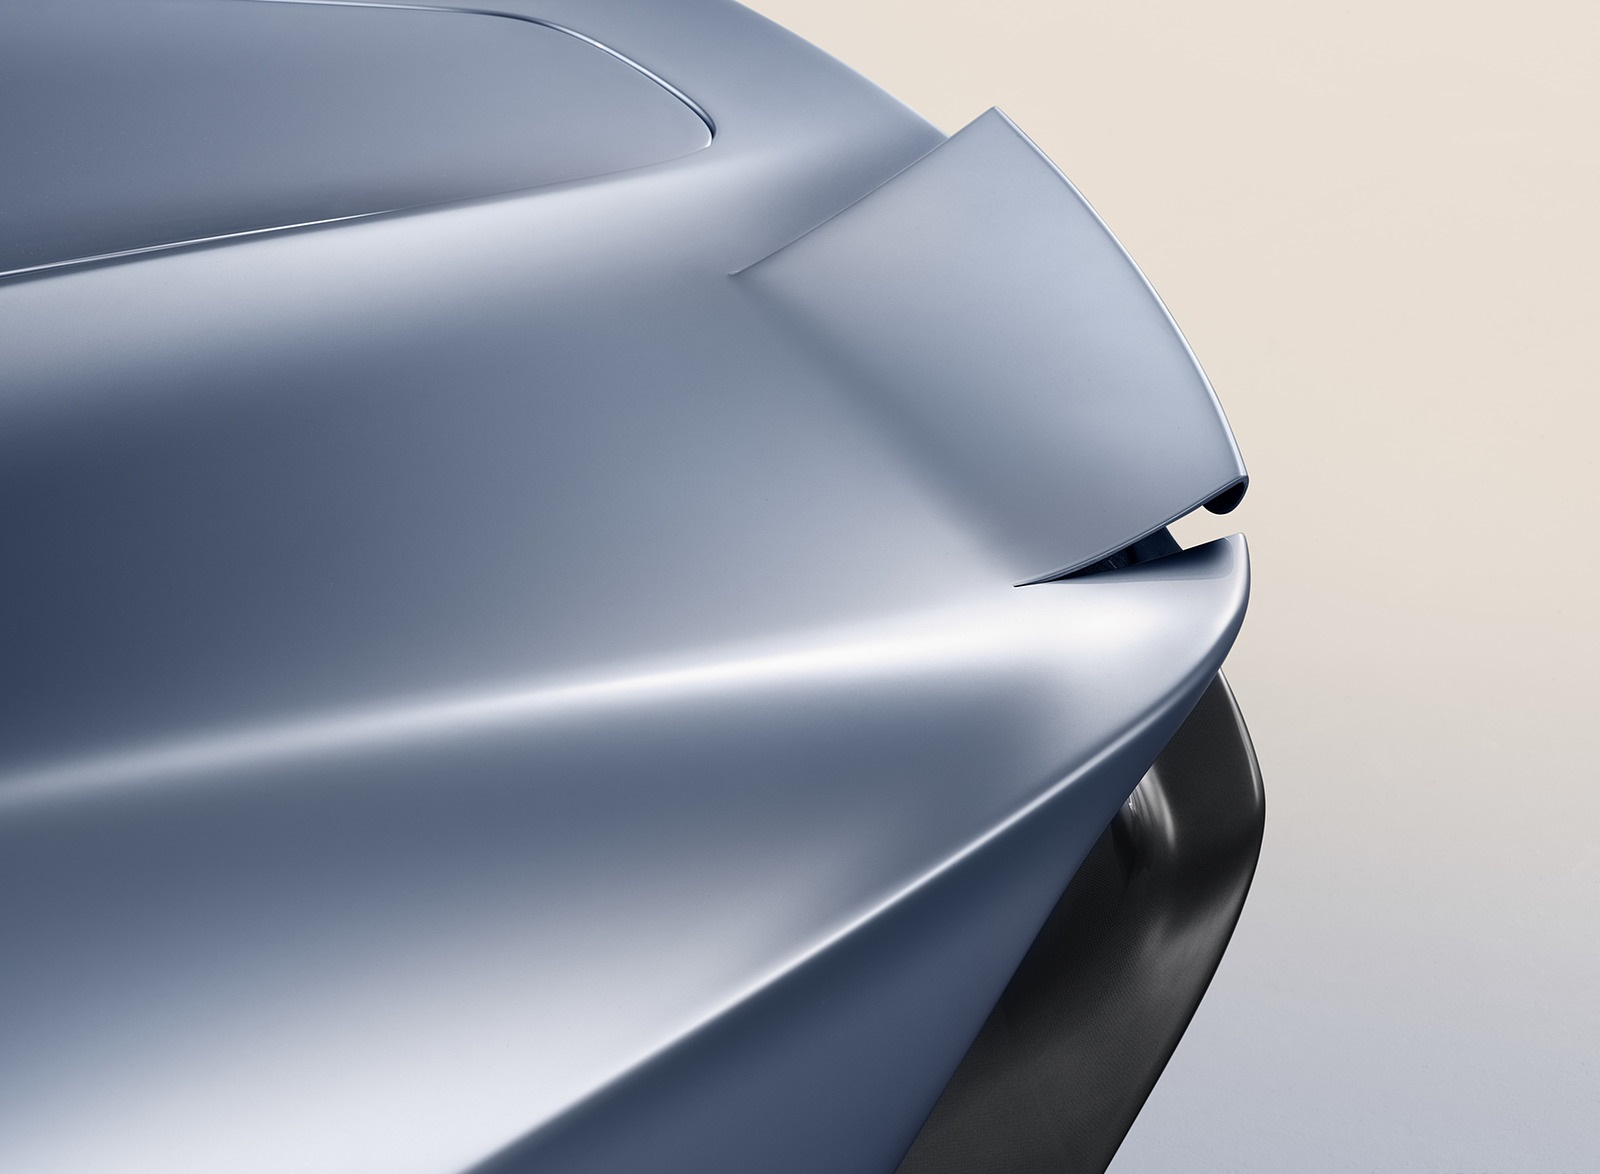 2019 McLaren Speedtail Spoiler Wallpapers #23 of 39